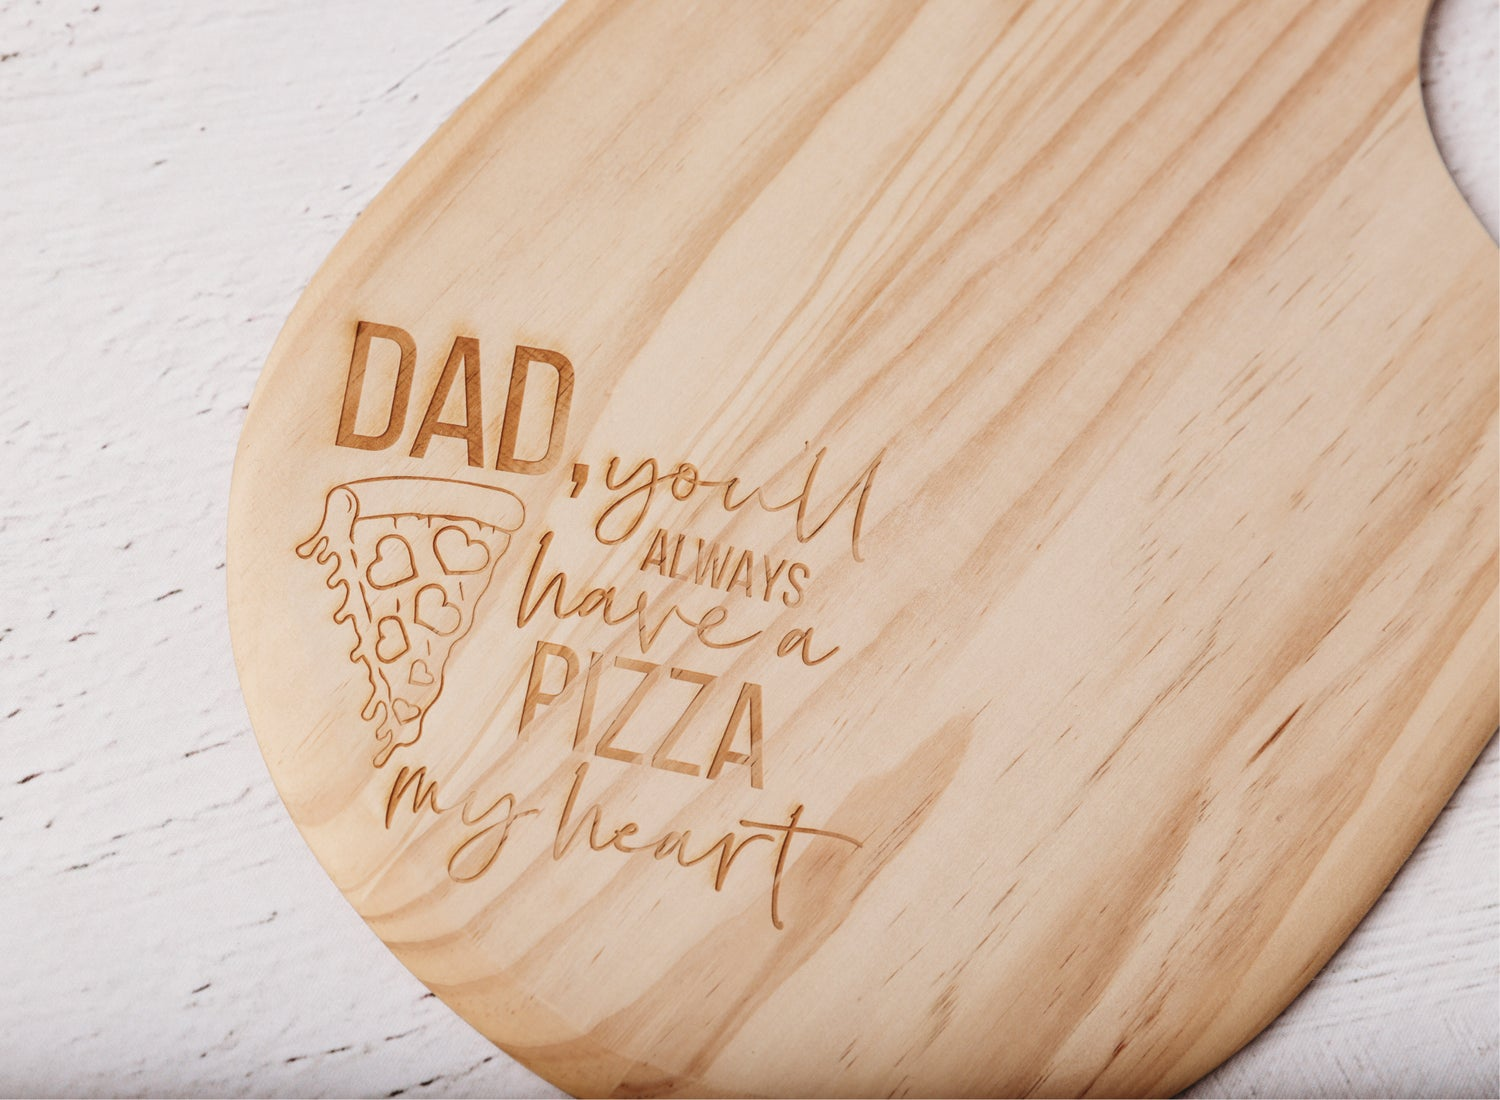 Image of Custom Engraved Pizza Paddle